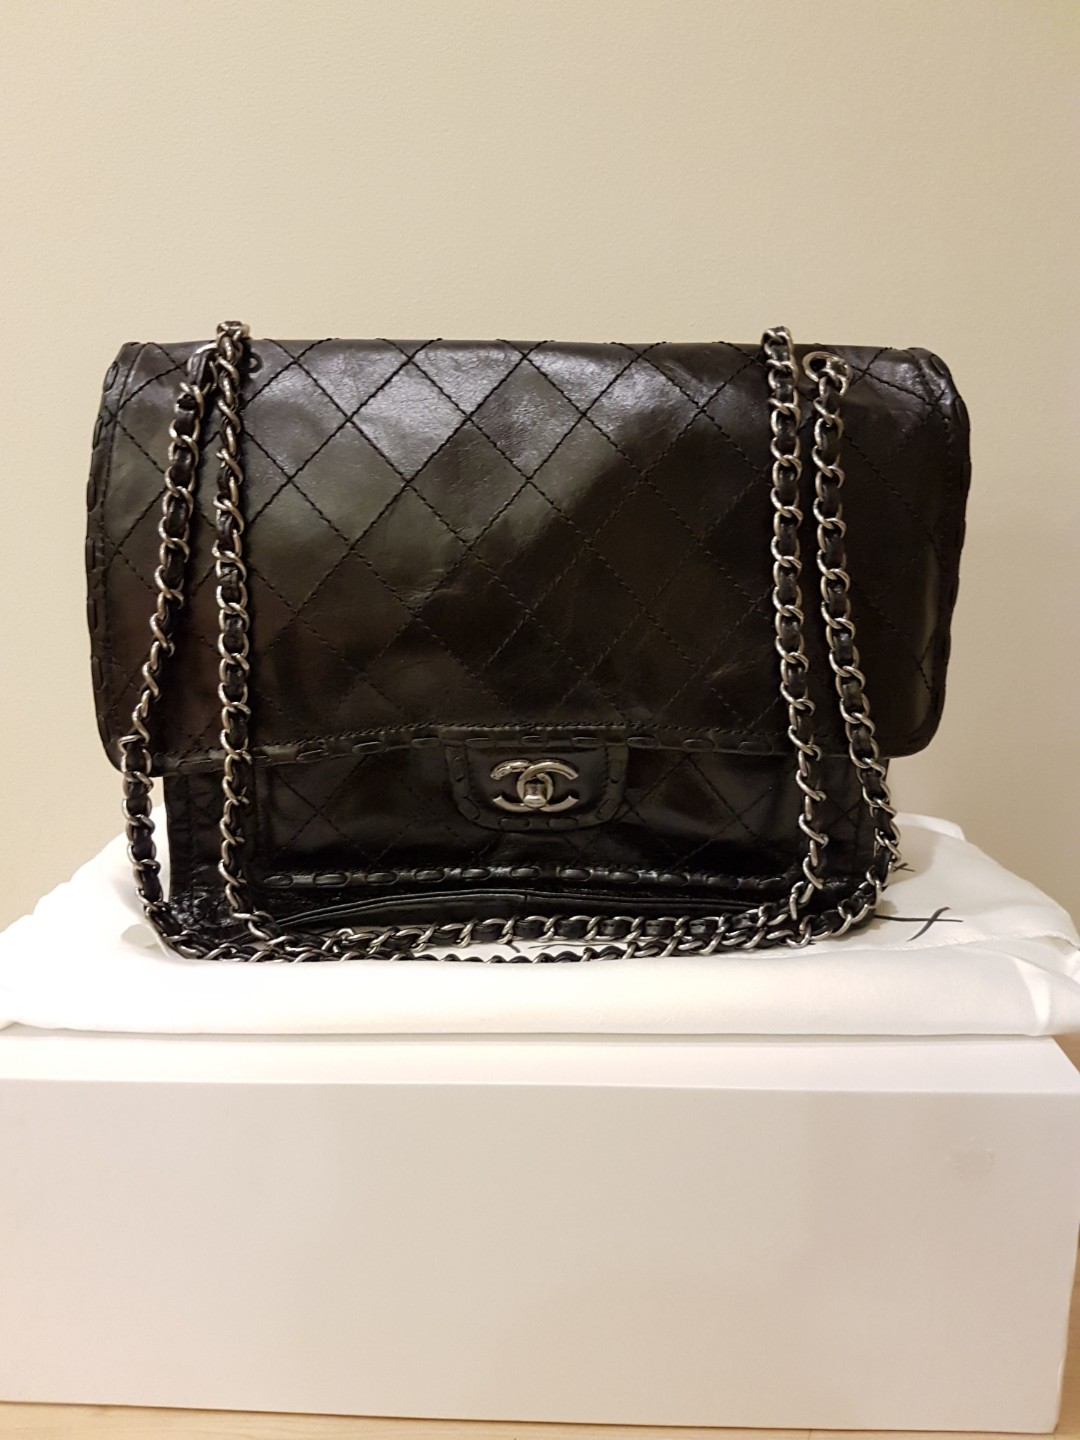 Chanel Black Quilted Flap Bag